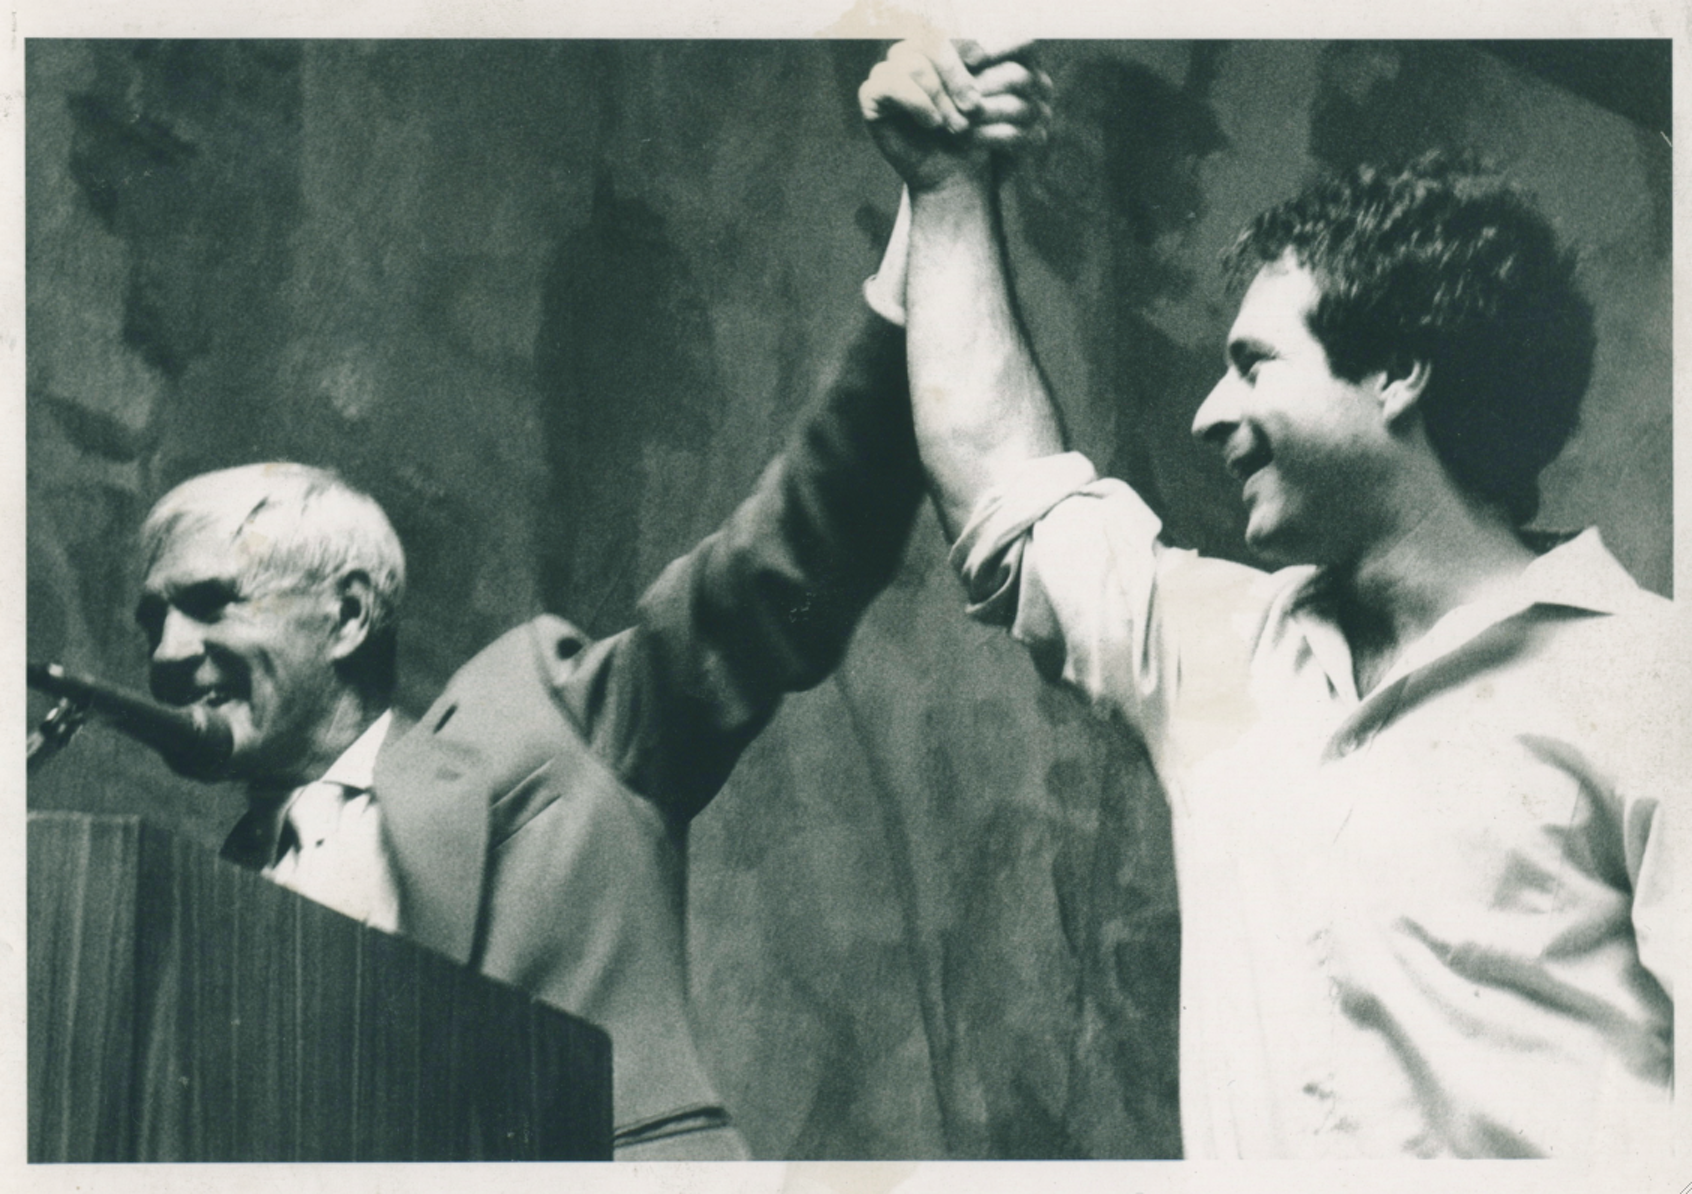 LSD advocate Timothy Leary celebrates with Rick Doblin in the 1980s.